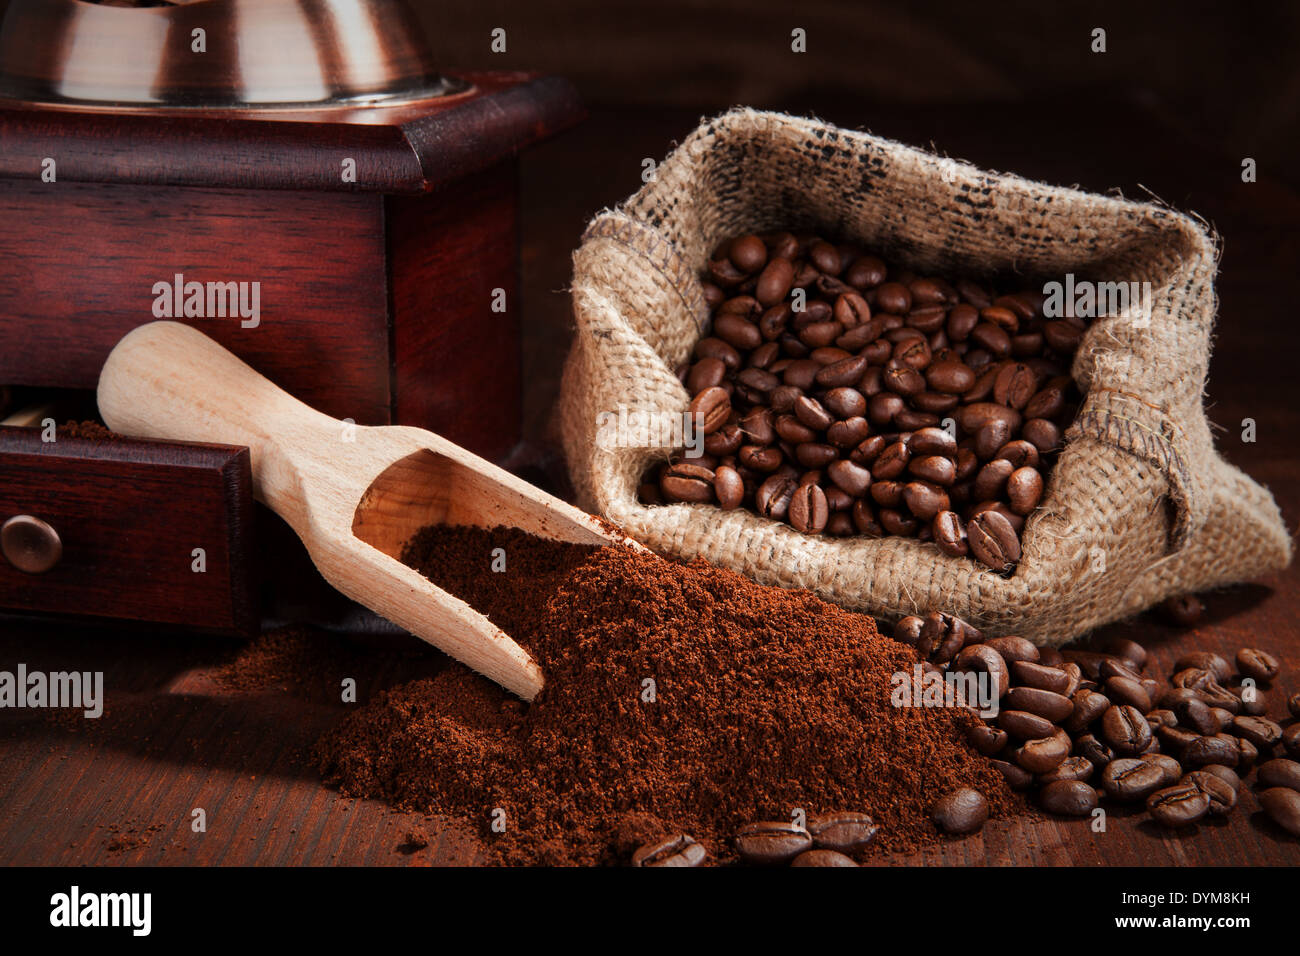 ground coffee stock photo - photo #1